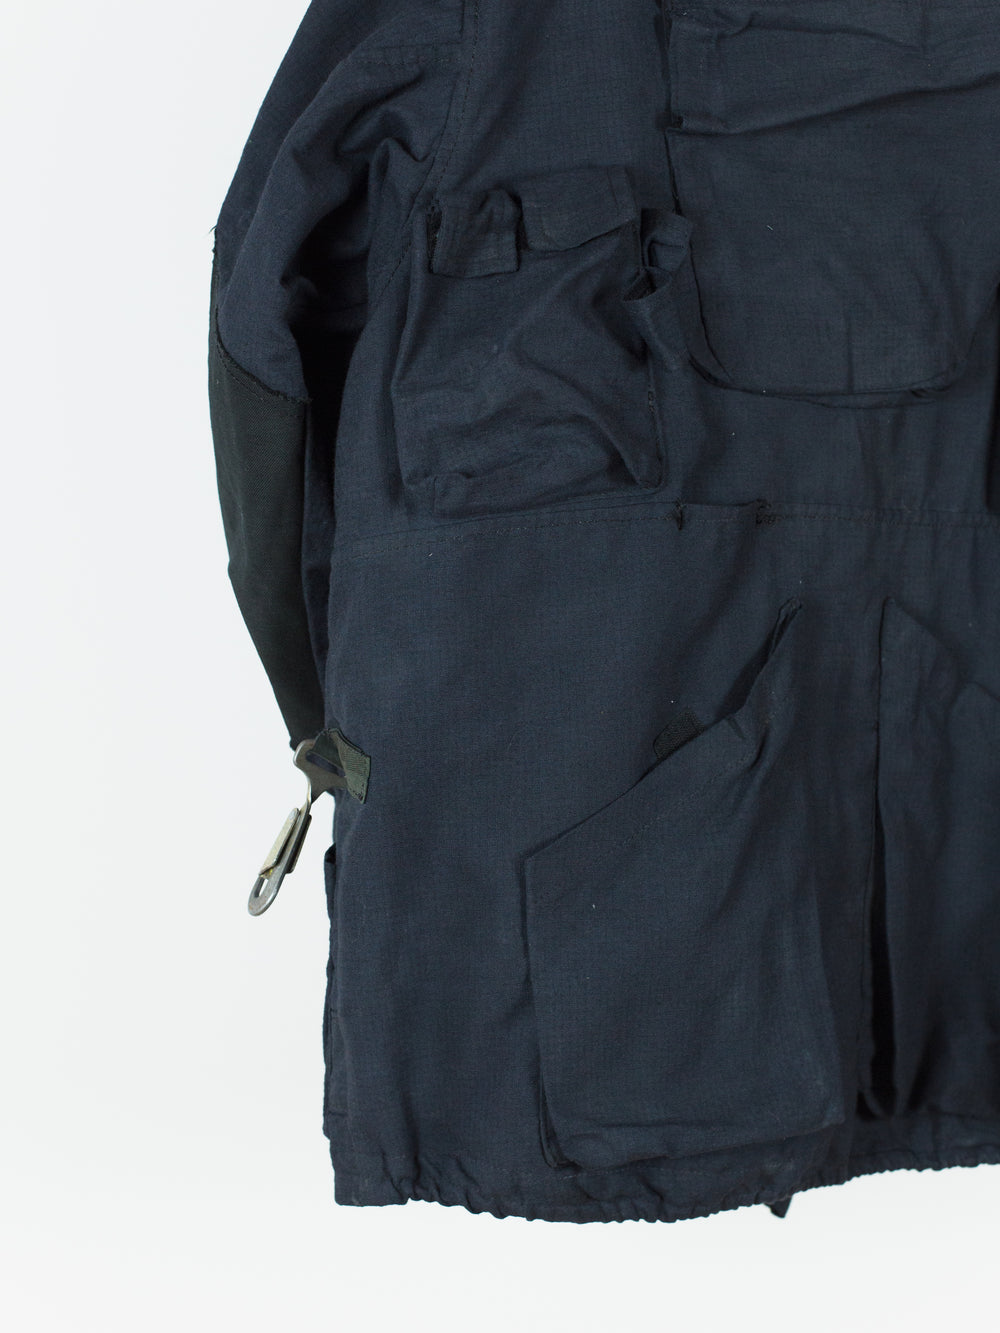 UK Army Issue MKVI EOD System Bomb Disposal Uniform